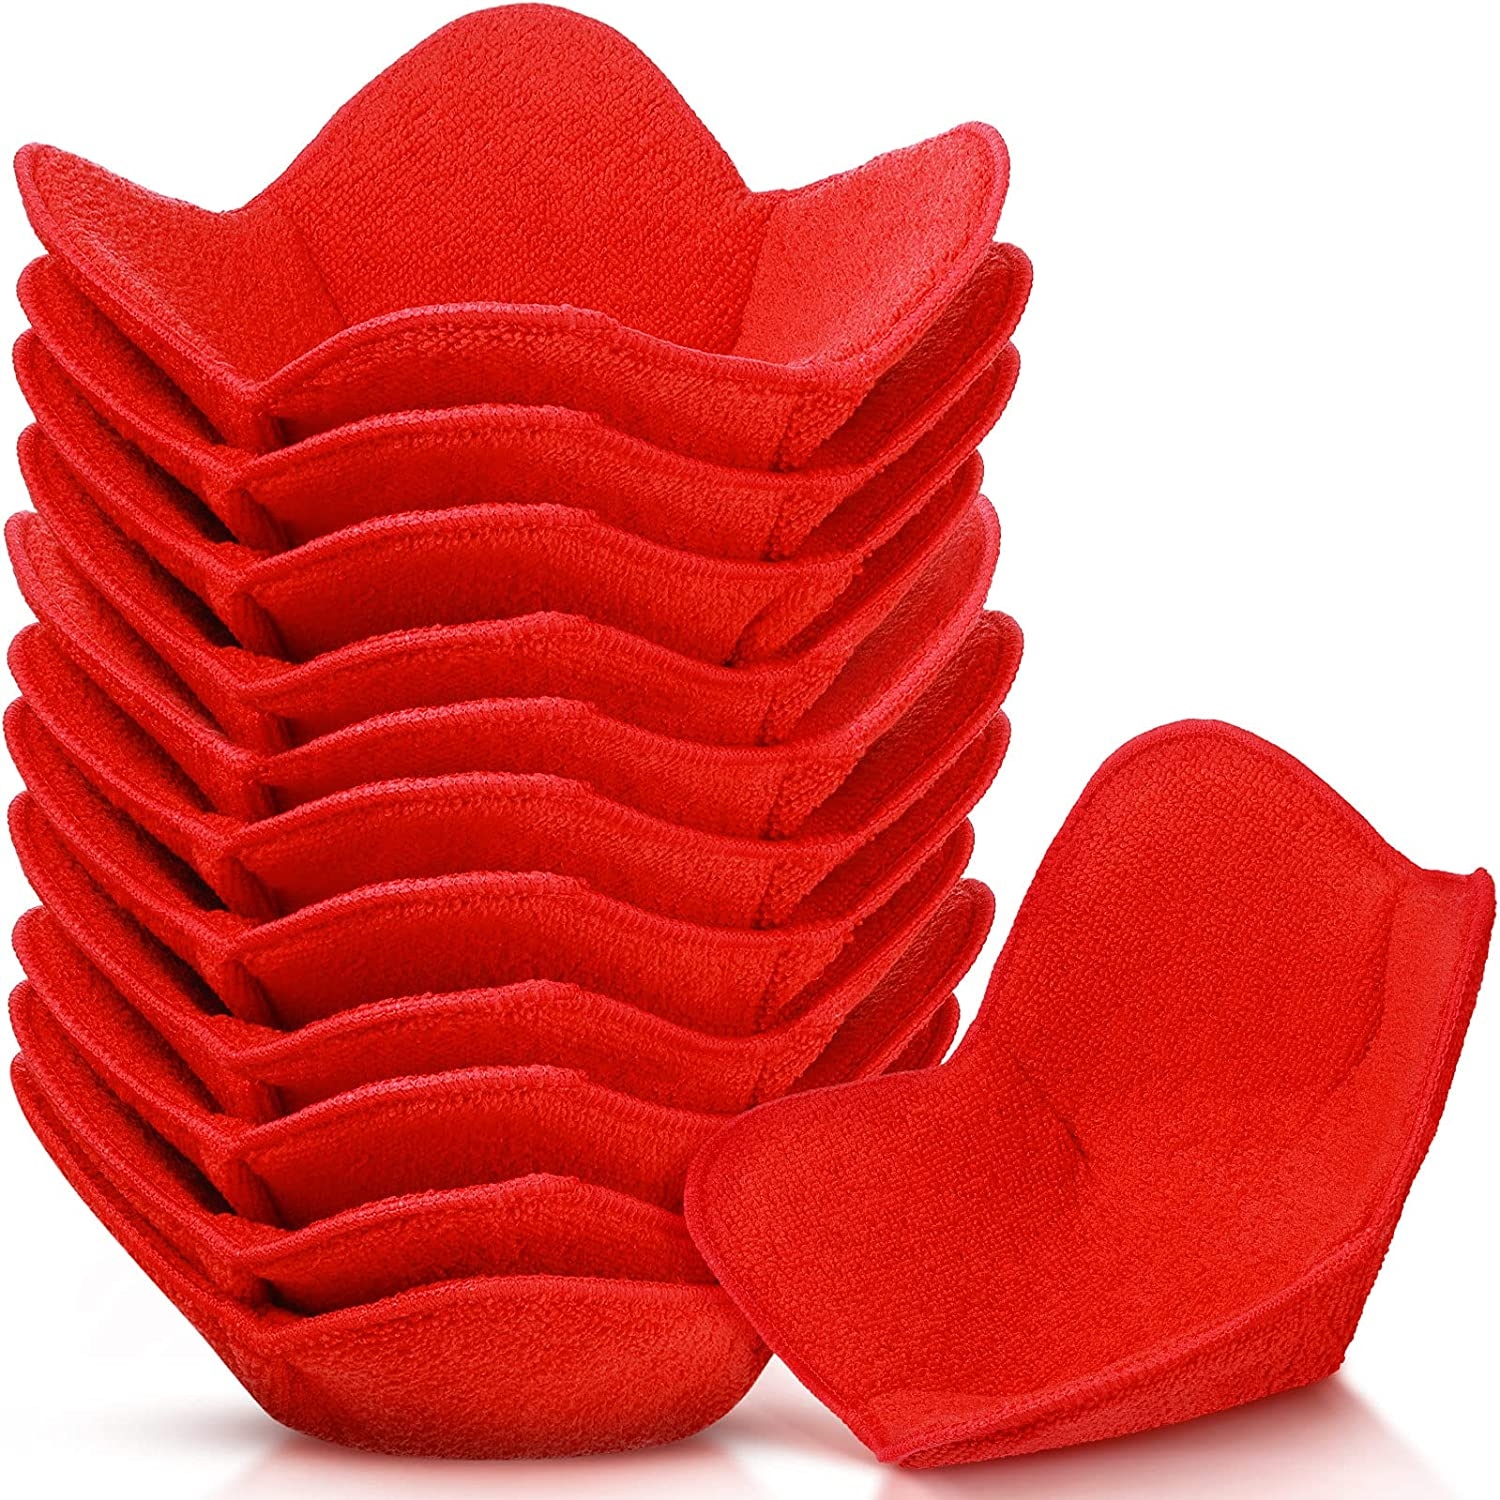 12 Pieces Microwave Safe Bowl Huggers Heat Resistant Bowl Holder Polyester Hot Bowl Holder Plate Huggers Protect Your Hands from Hot Dishes for Heating Soup, Leftover Food, Meals (Red)